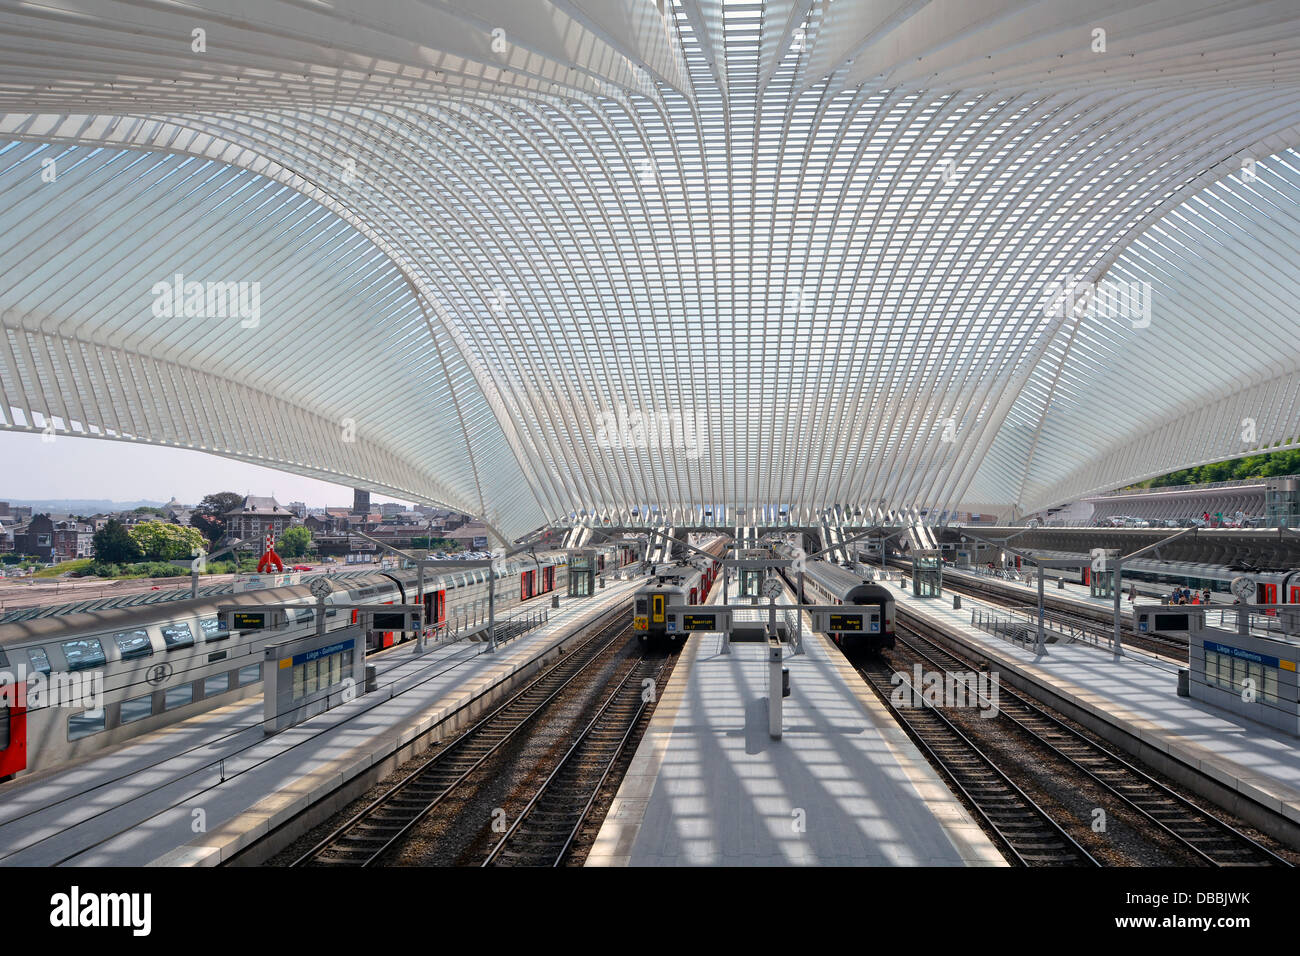 Railway tracks trains  platforms all covered by glass ceiling & roof in Belgium EU Liege modern architecture - Stock Image